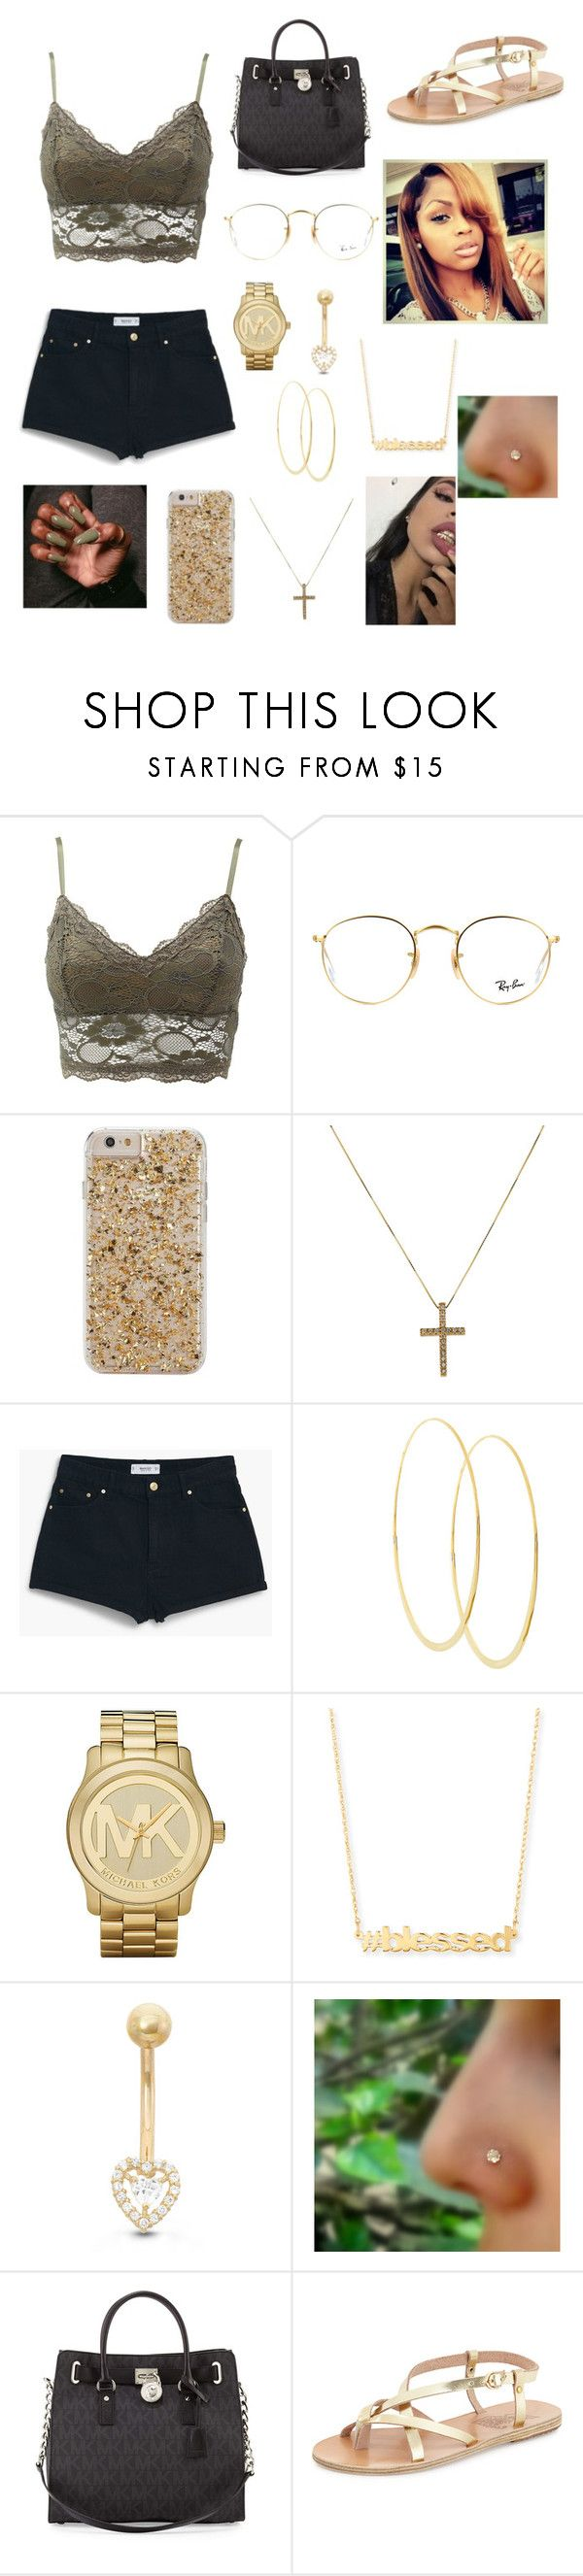 """""""Mall😍😍"""" by dillyntroywifeyyyy ❤ liked on Polyvore featuring Charlotte Russe, Ray-Ban, Case-Mate, MANGO, Lana, Michael Kors, Jennifer Zeuner, Gioelli, MICHAEL Michael Kors and Ancient Greek Sandals"""